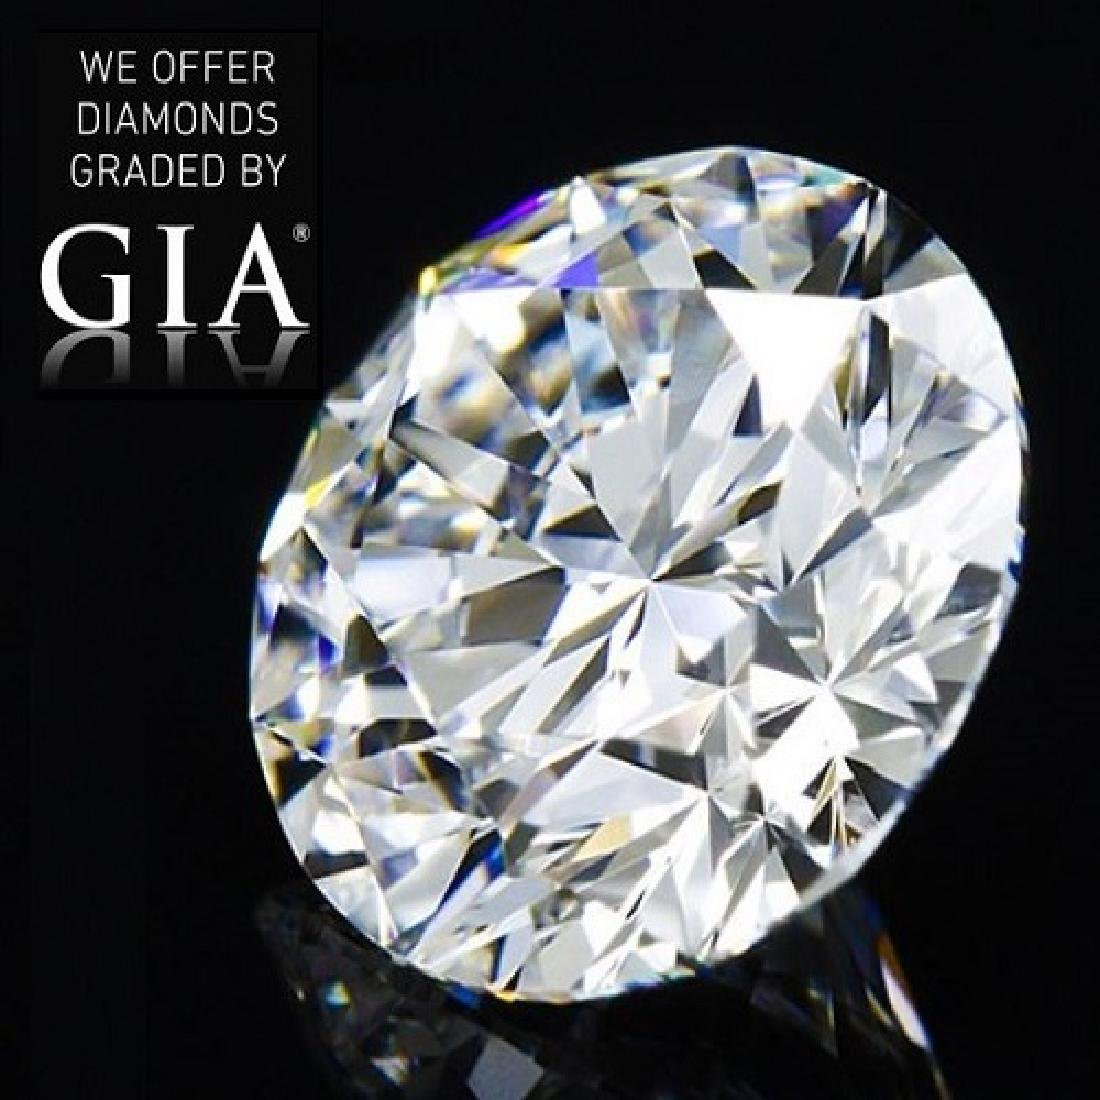 8.53 ct, Color D/IF, Round cut Diamond